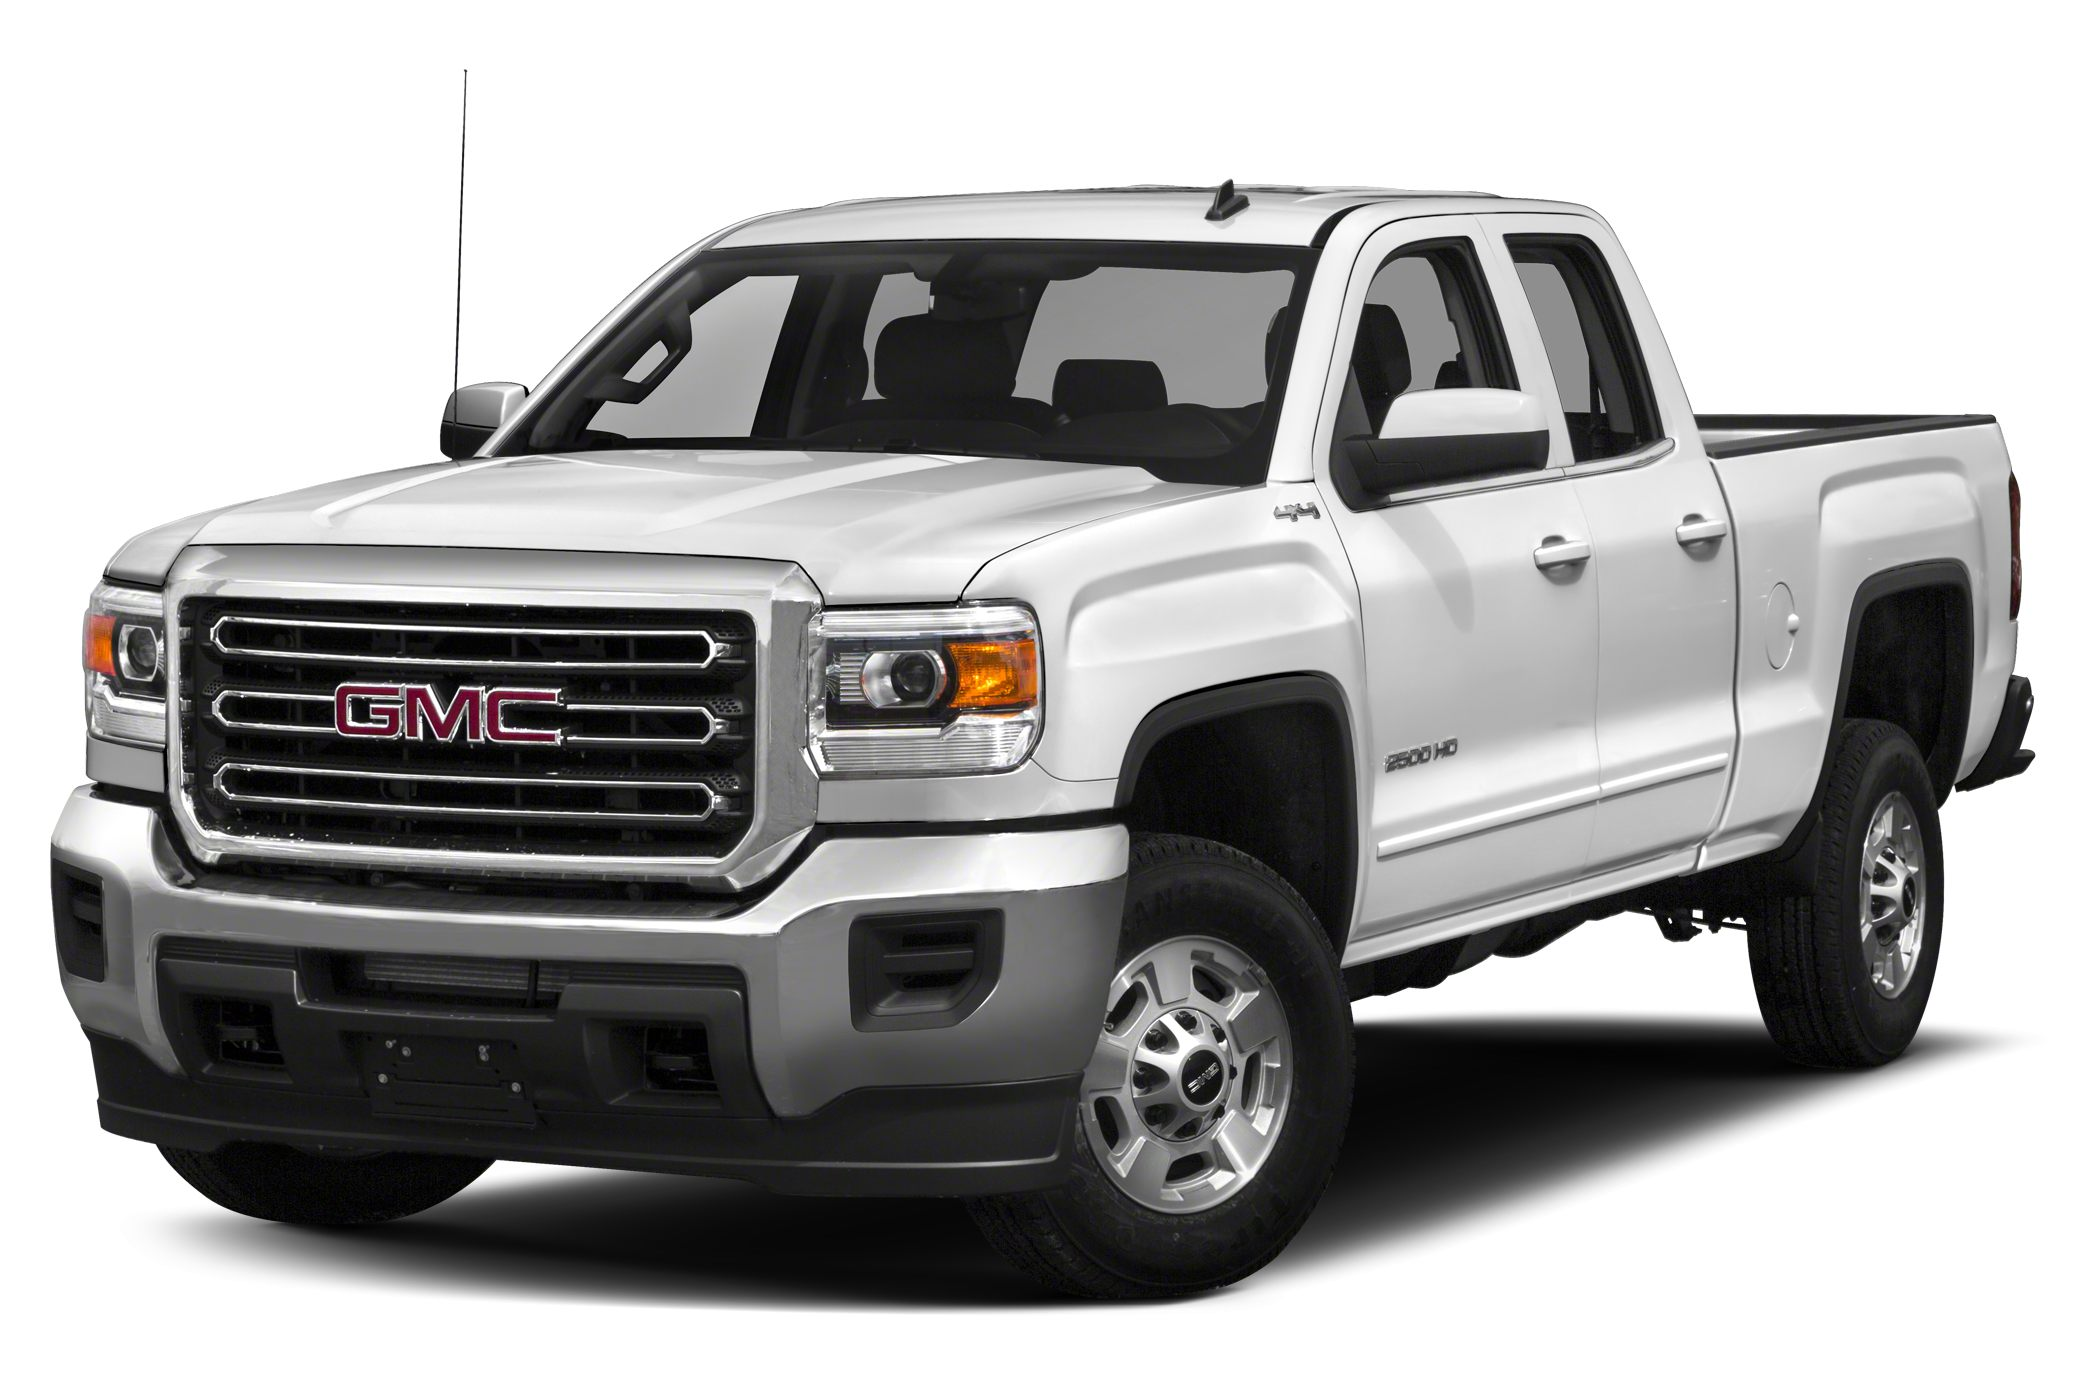 2015 GMC Sierra 2500 SLE Crew Cab Pickup for sale in Detroit Lakes for $50,185 with 0 miles.